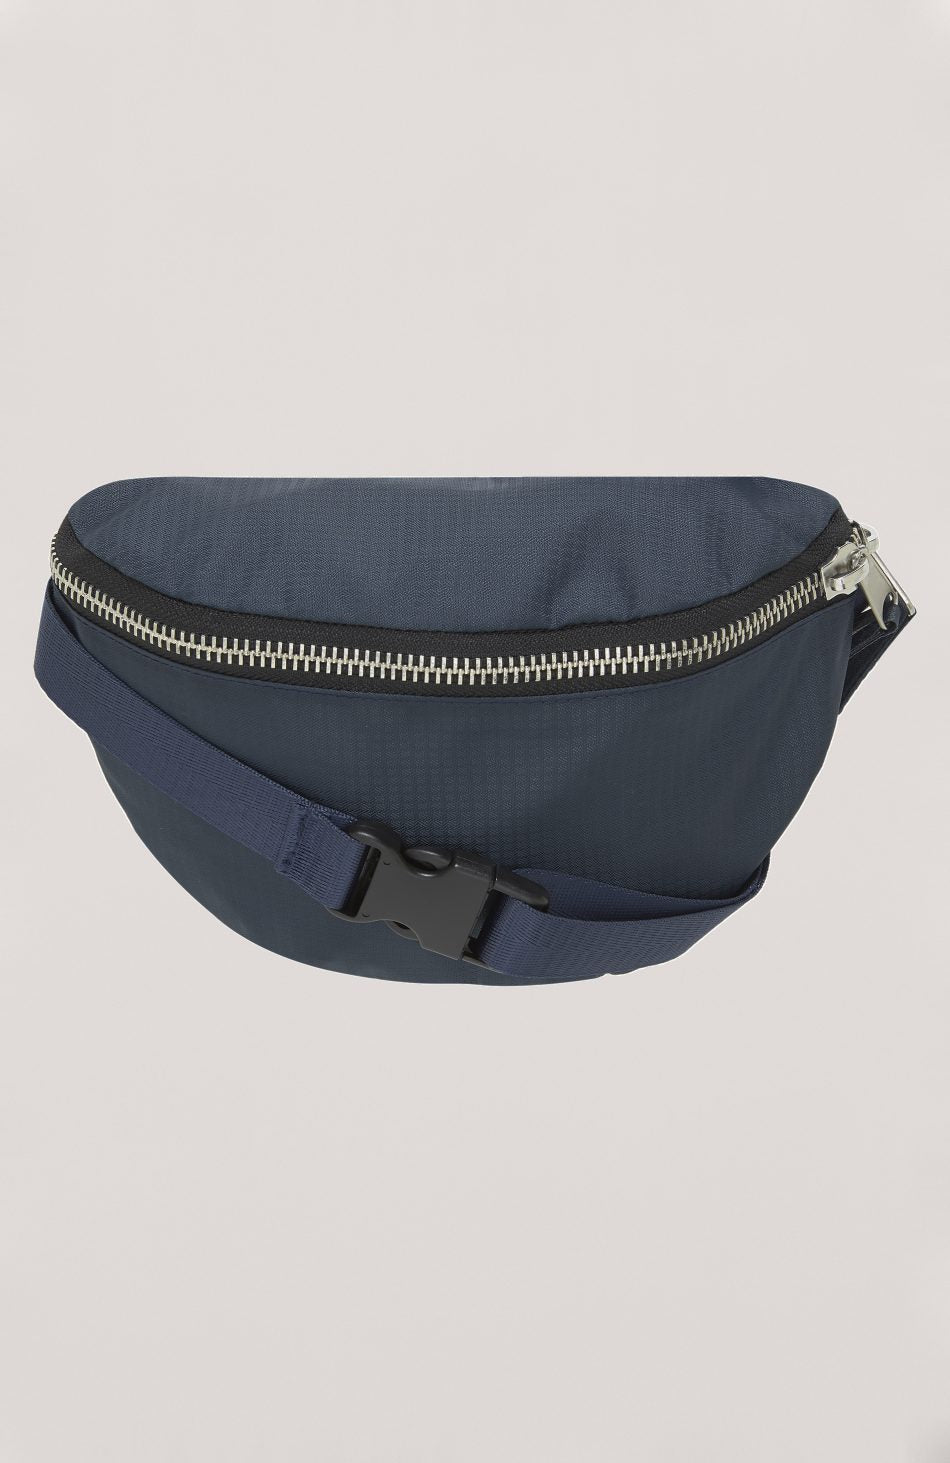 Bum Bag in Navy